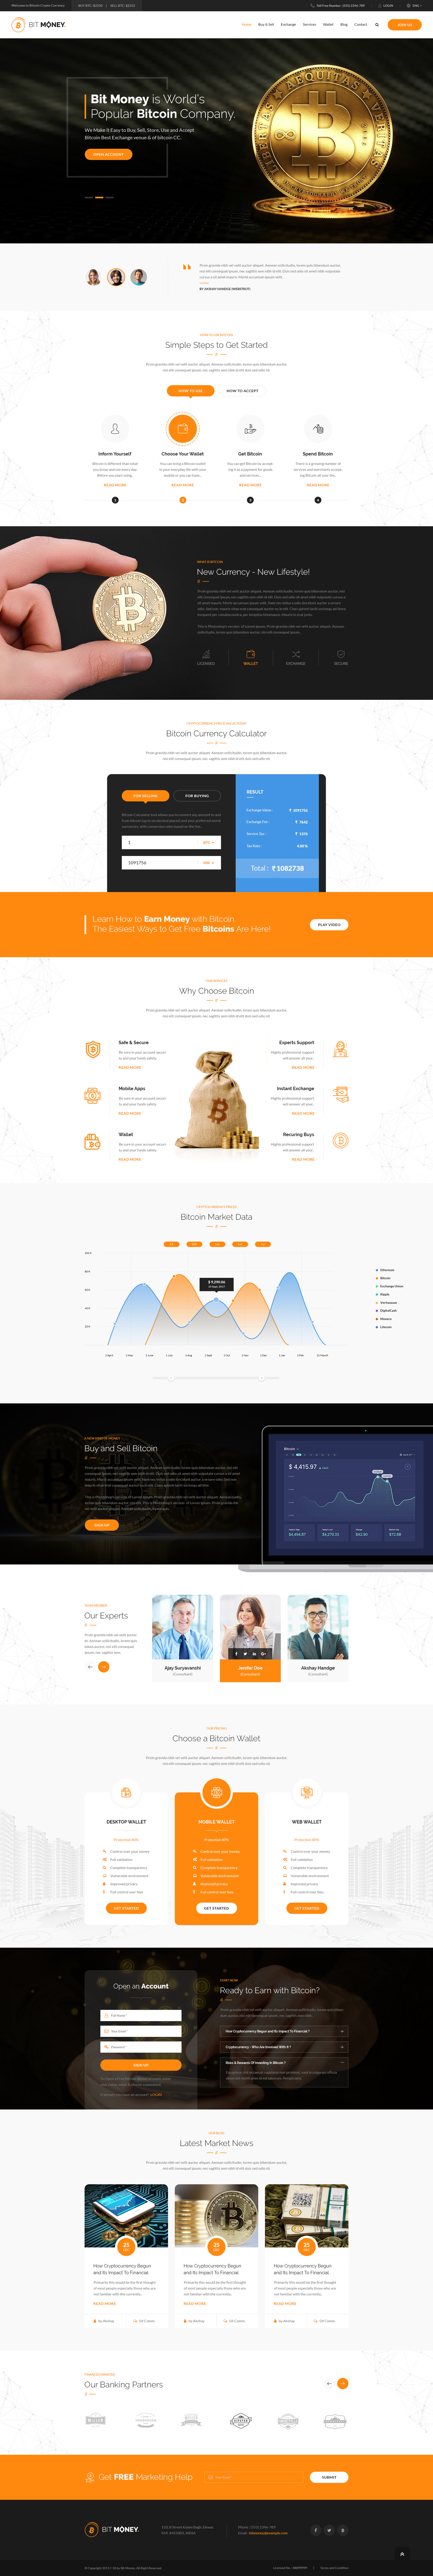 Bit Money - Bitcoin Crypto Currency PSD Template - 1